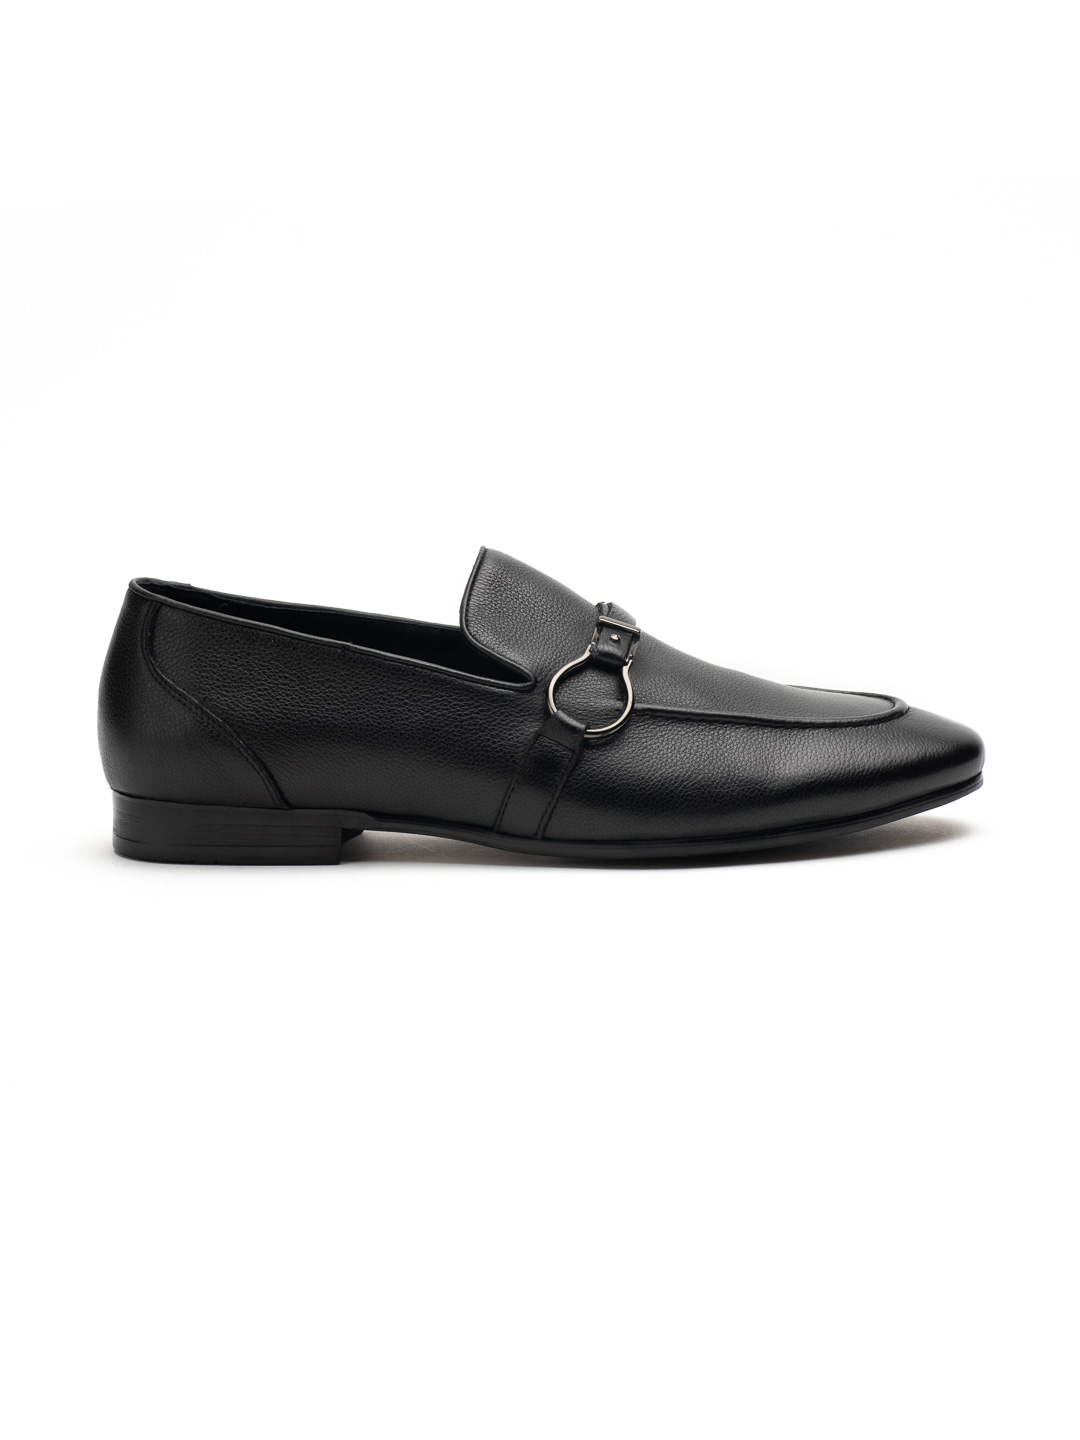 Heel _ Buckle London-HBDARM084-Carousal Black Loafers-Black-1